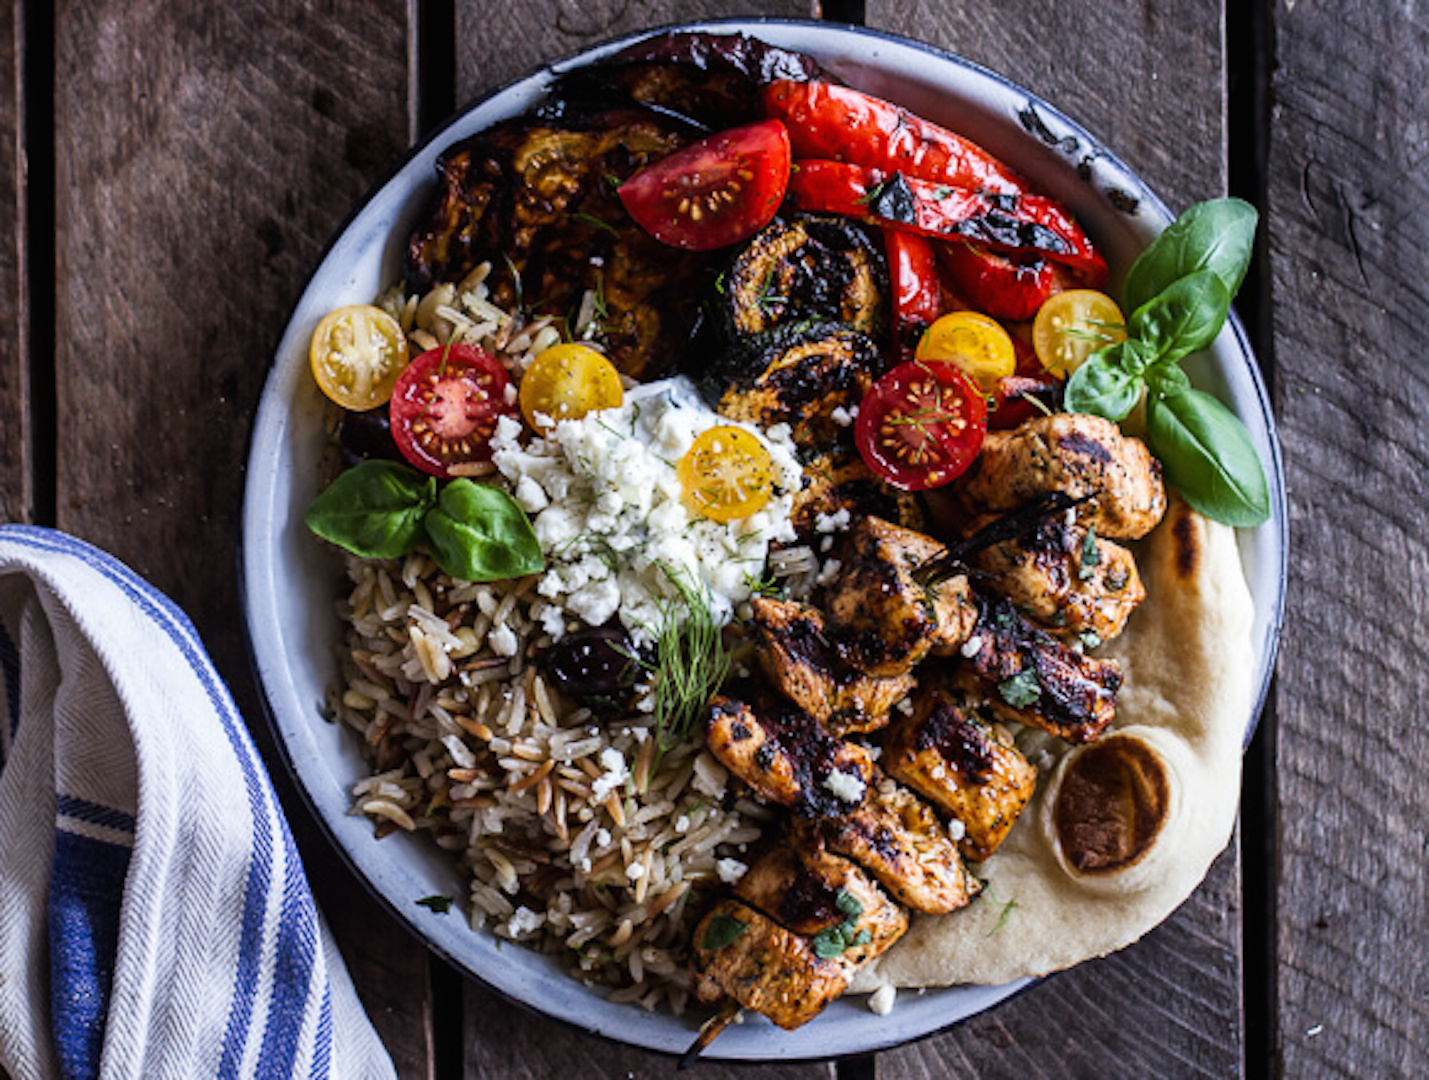 Greek Chicken Souvlaki And Rice Pilaf Plates W Marinated Veggies Feta Tzatziki A Menu For You